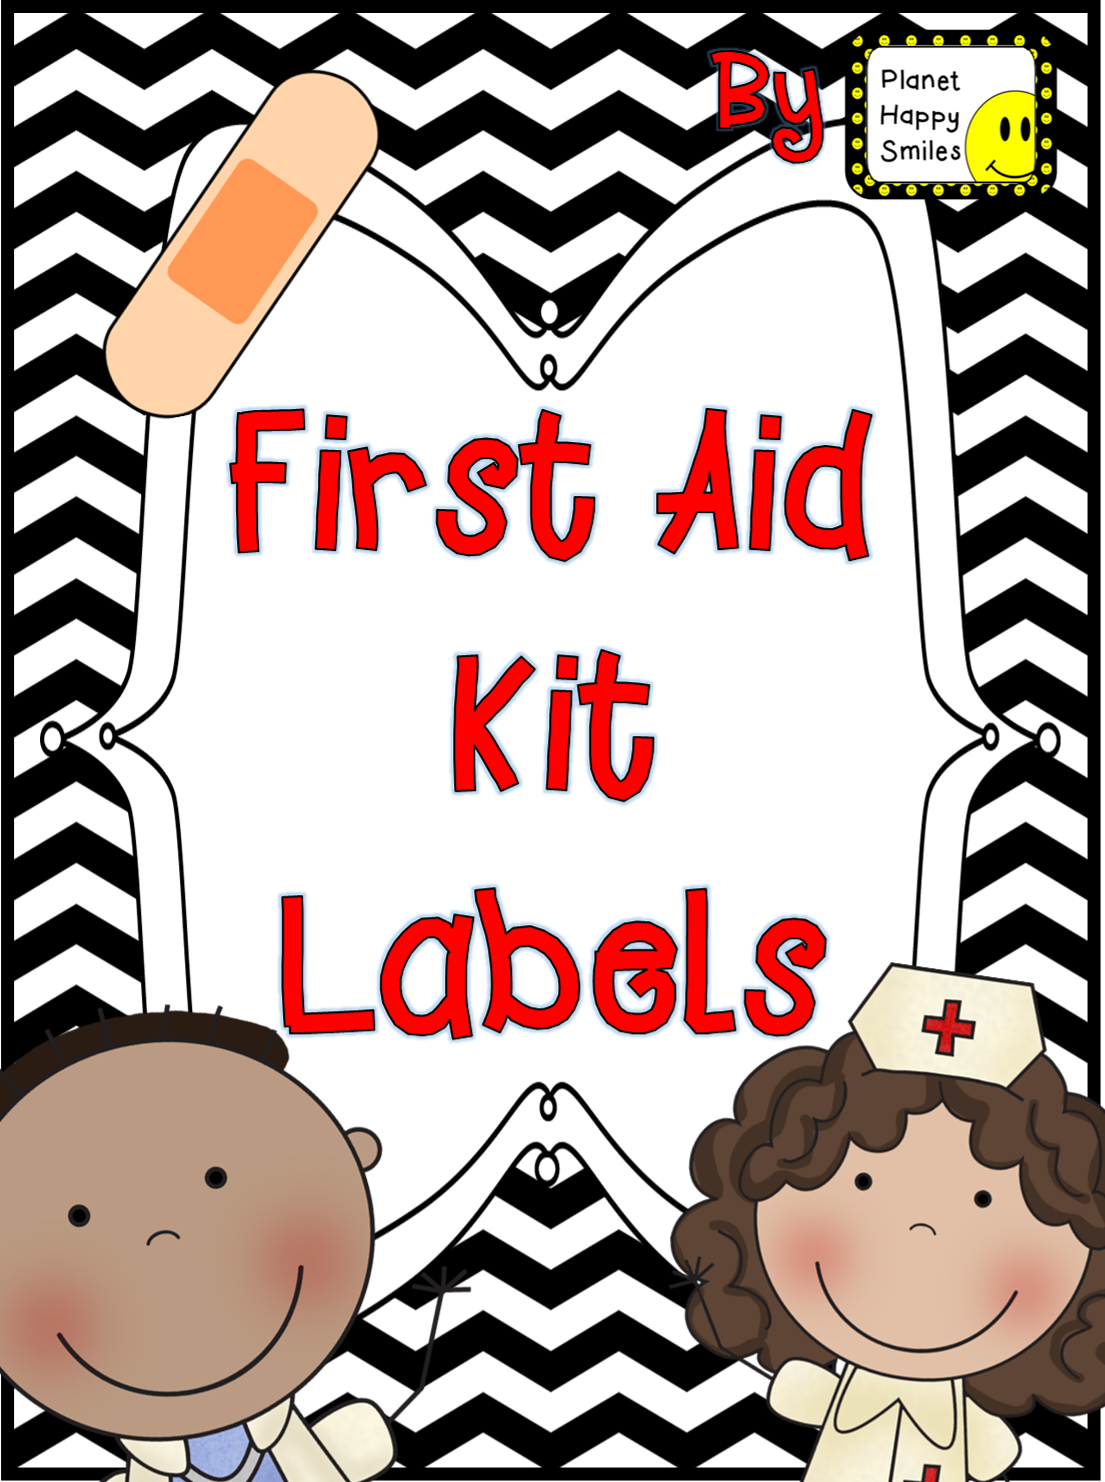 jpg transparent stock First aid clipart classroom. Planet happy smiles field